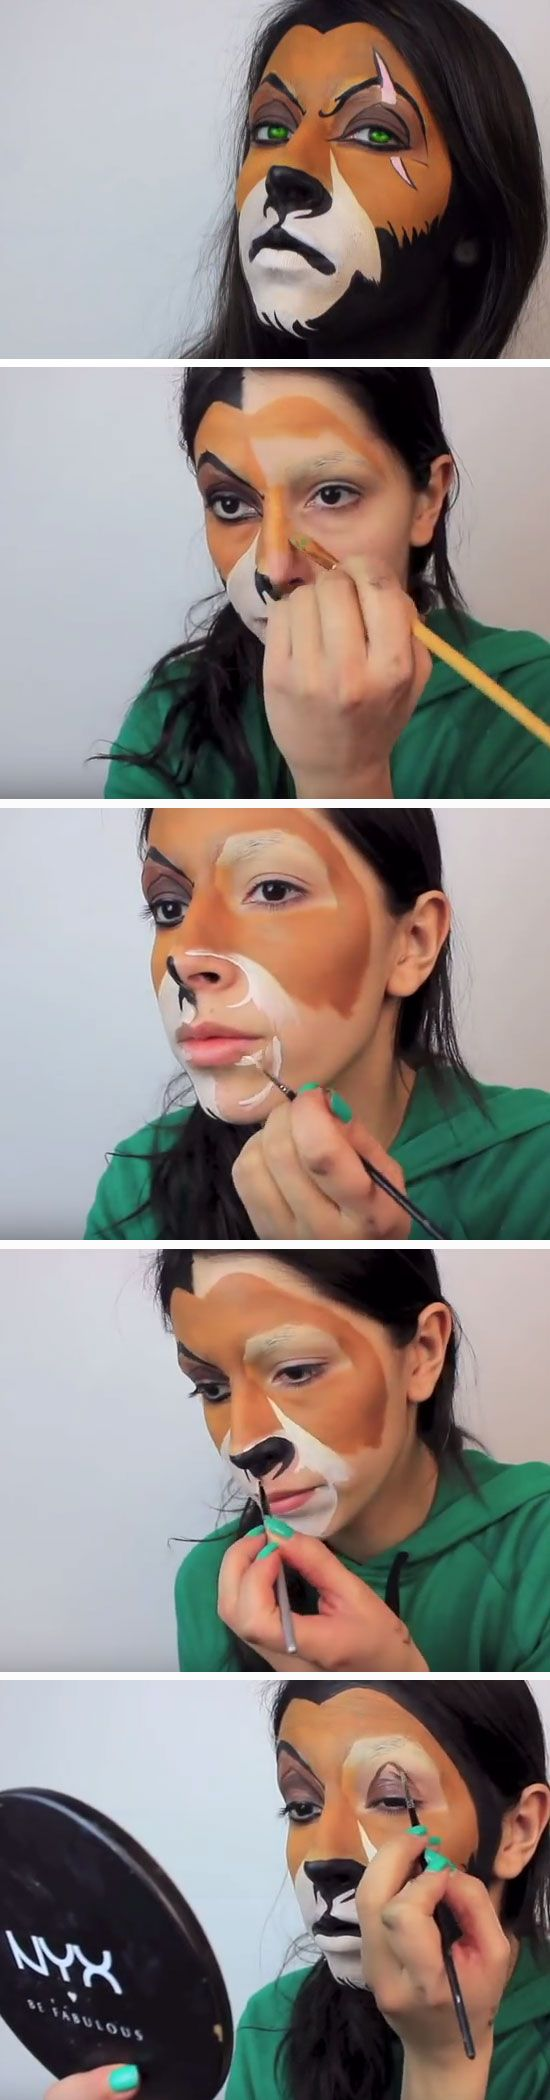 The Lion King's Scar | Click Pic for 26 DIY Halloween Makeup Ideas for Women | DIY Halloween Dress Up Ideas for Adults http://videosdeterror.com.mx